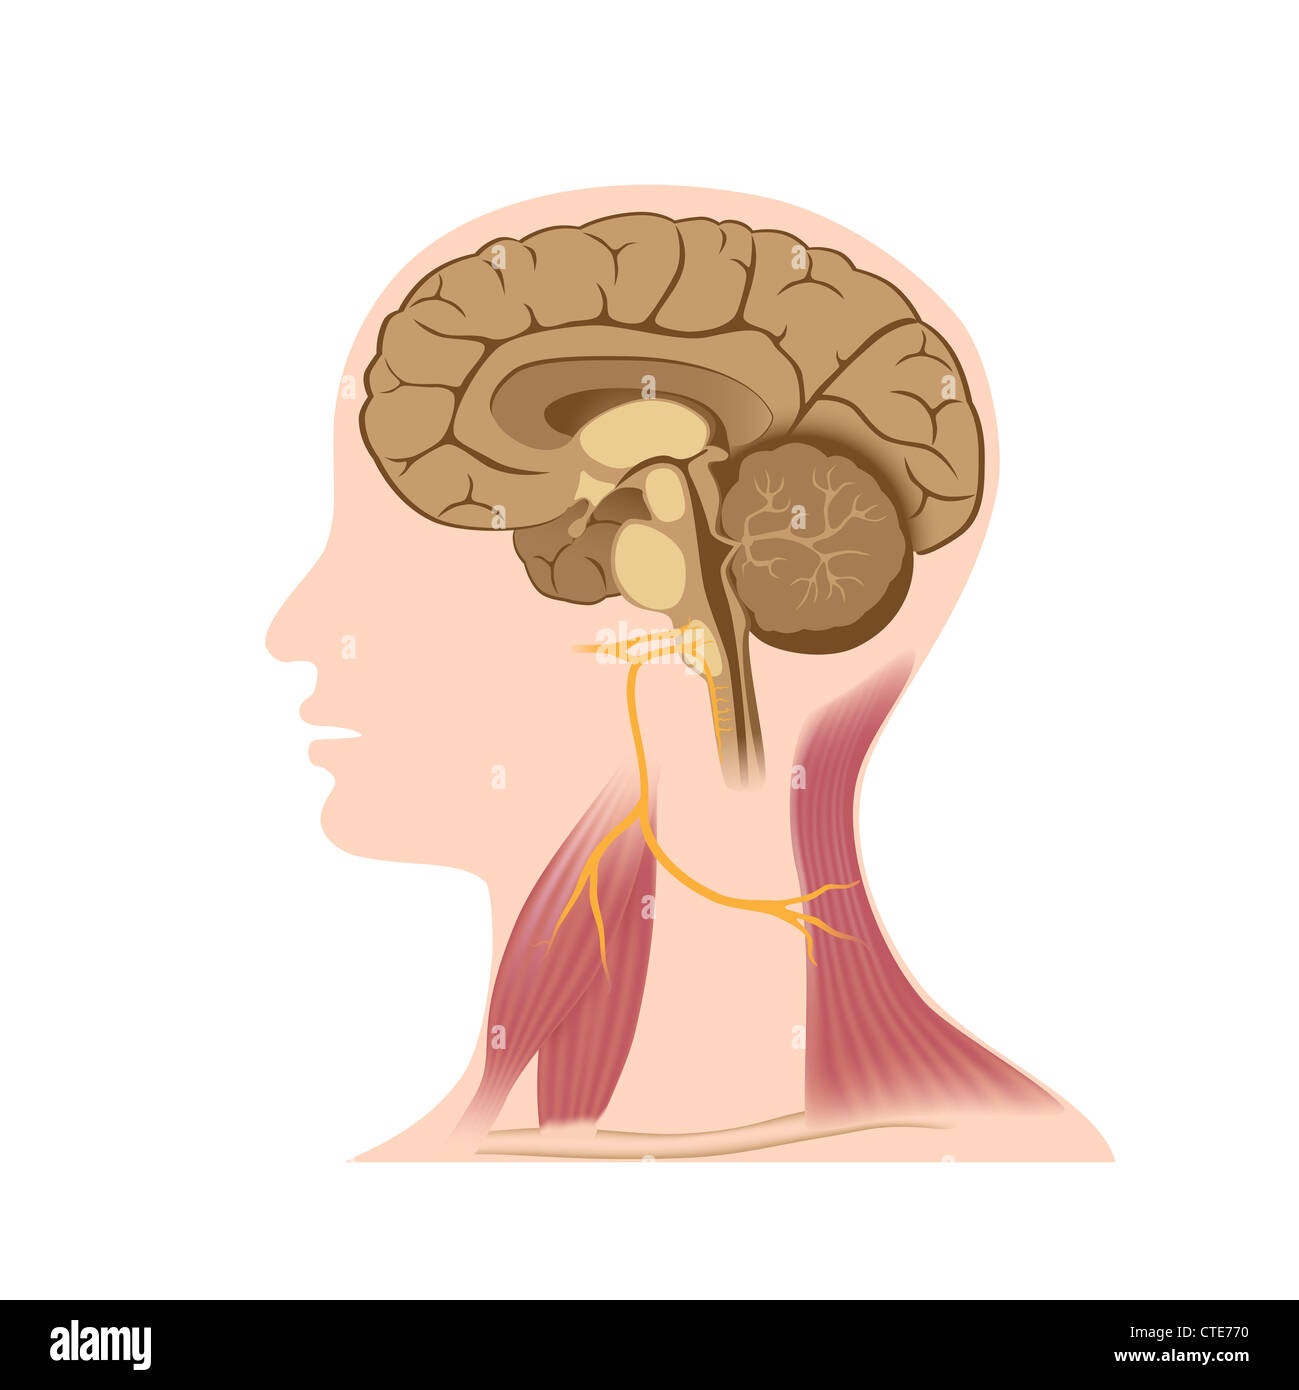 Vagus Nerve Stock Photos & Vagus Nerve Stock Images - Alamy